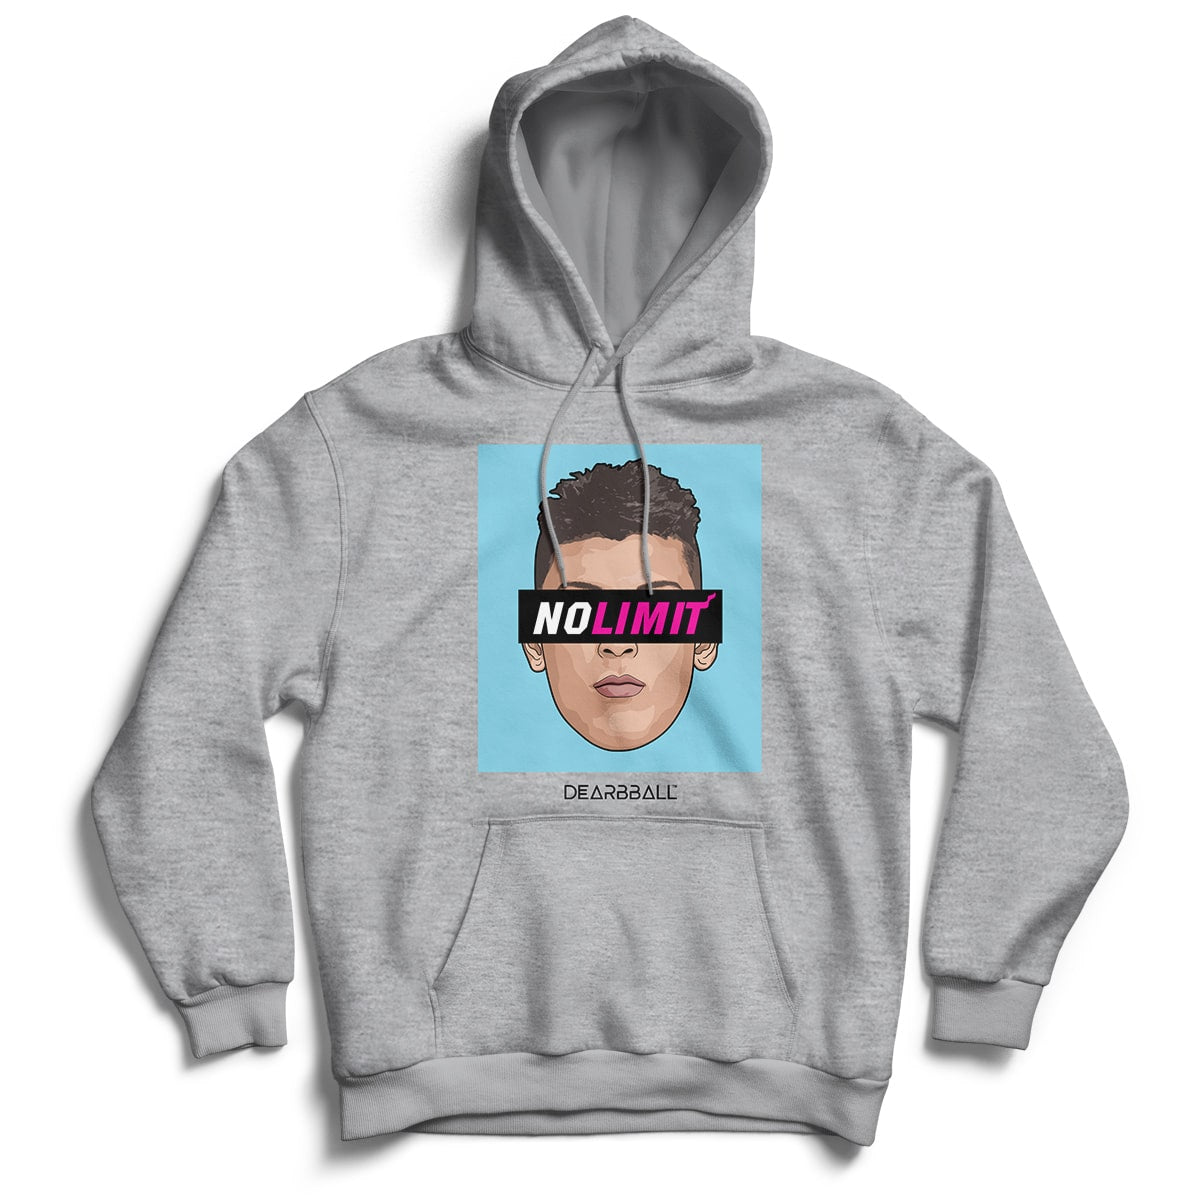 Tyler_Herro_Hoodie_No_Limit_Miami_Vice_Blue_Dearbball_Grey